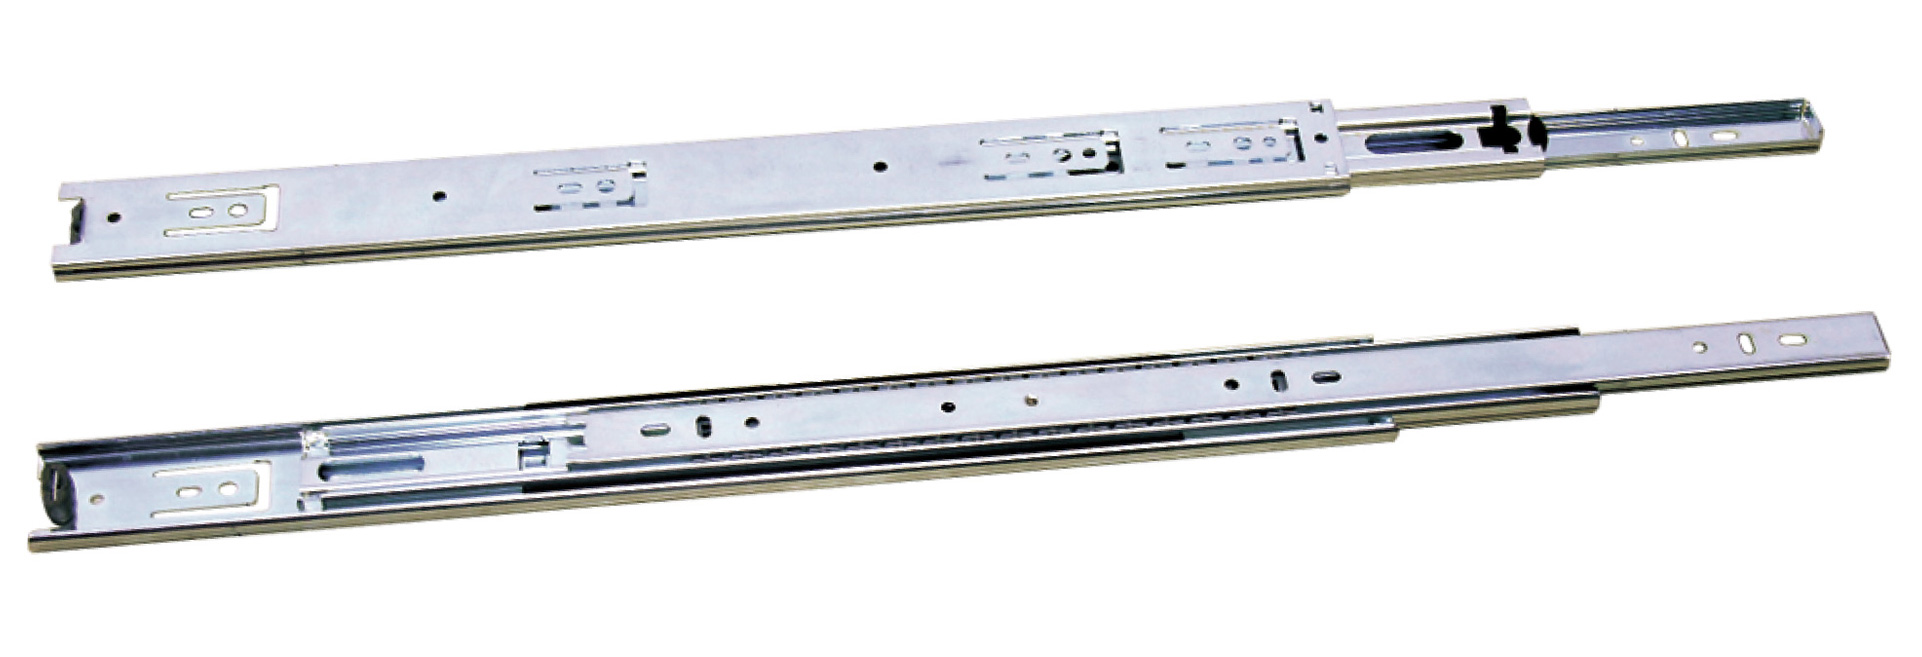 Cabinet Drawer Rails Manufacturer Of Extra Heavy Duty Drawer Slides For Atm Partsatm